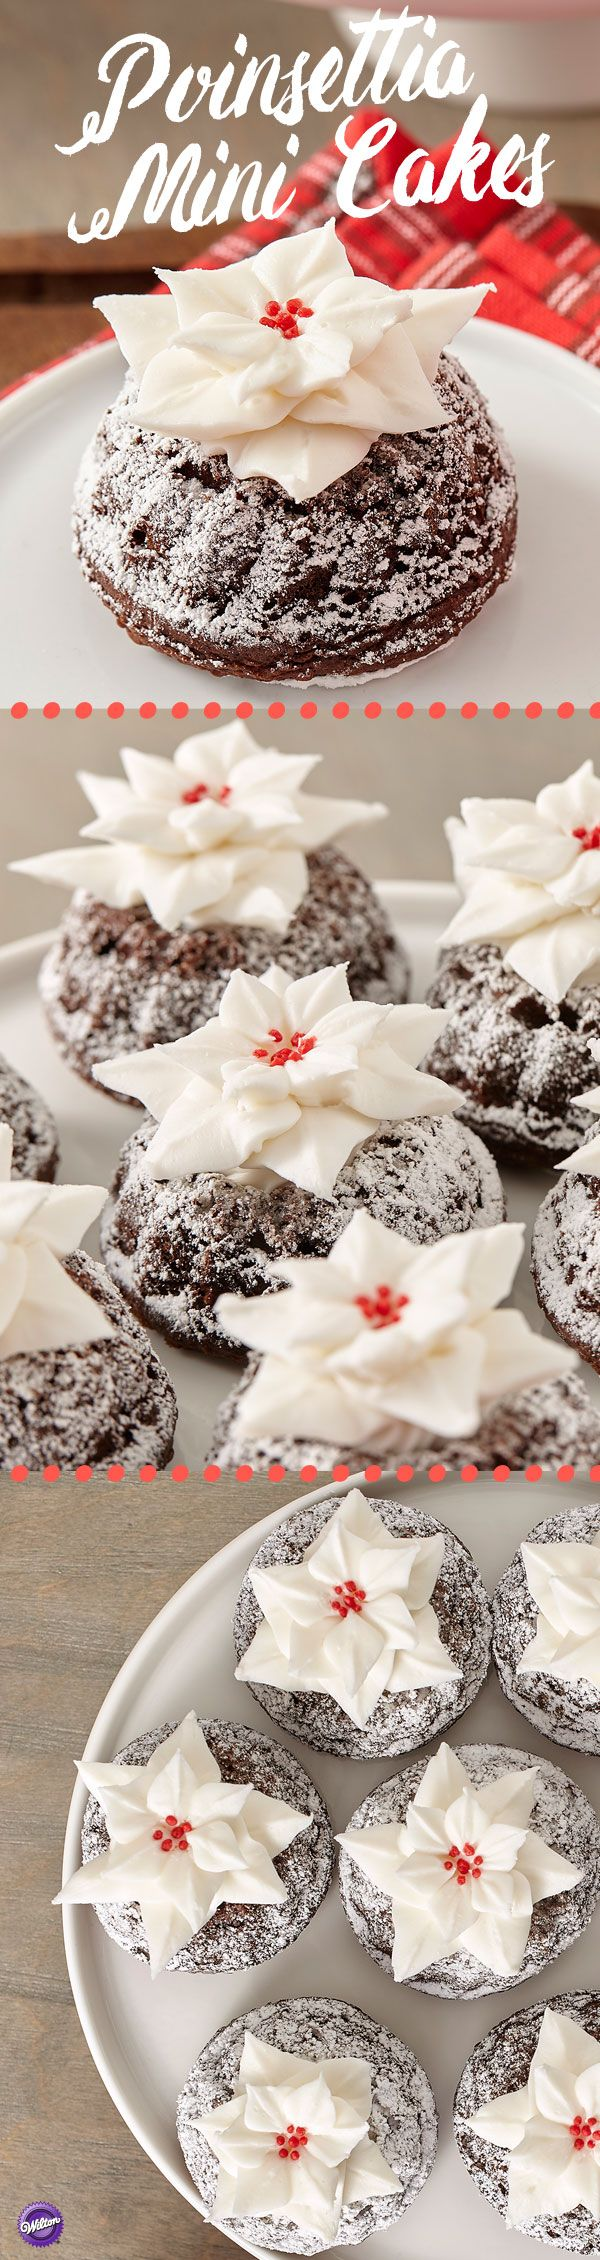 Poinsettias are the flower of the season. Made with Creamy Decorator Icing, then placed on a mini fluted tube cake, they add a festive holiday touch to your sweets table.